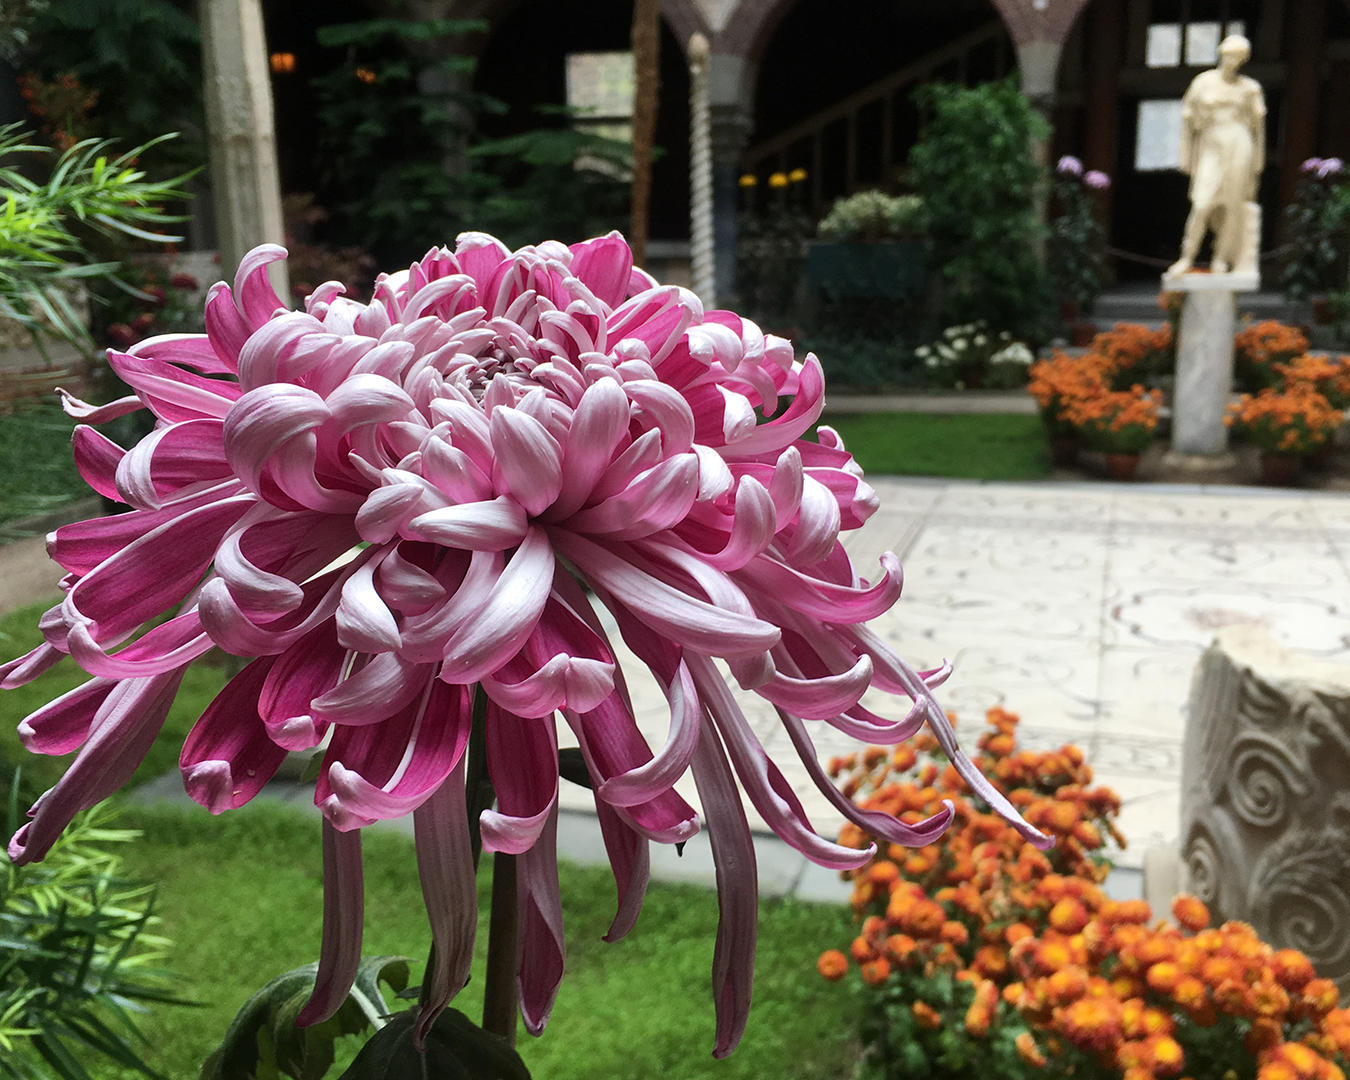 A Lili Gallon, which has irregular incurve class (purple + white), large showy reflexing bloom of unusual color combination. Very long deep wine purple florets that curl to show stunning reverse color of silver.